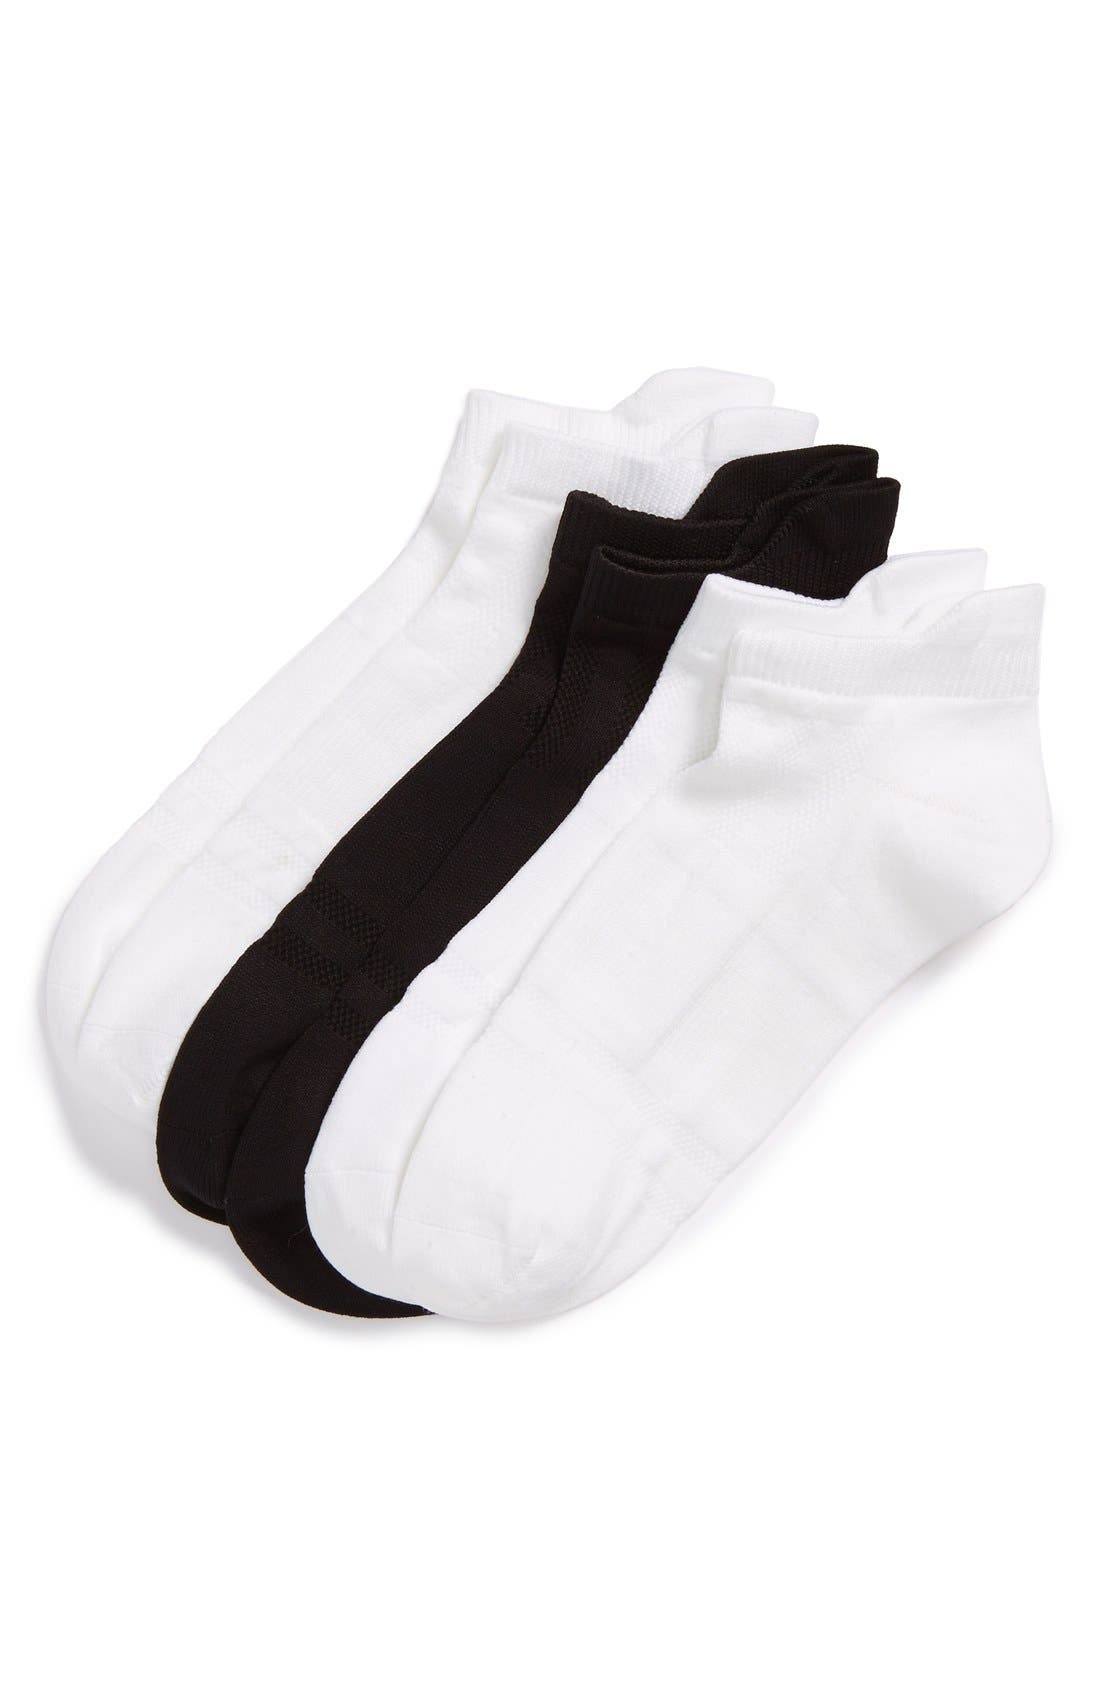 SOF SOLE 3-Pack Microfiber Tab Performance Socks